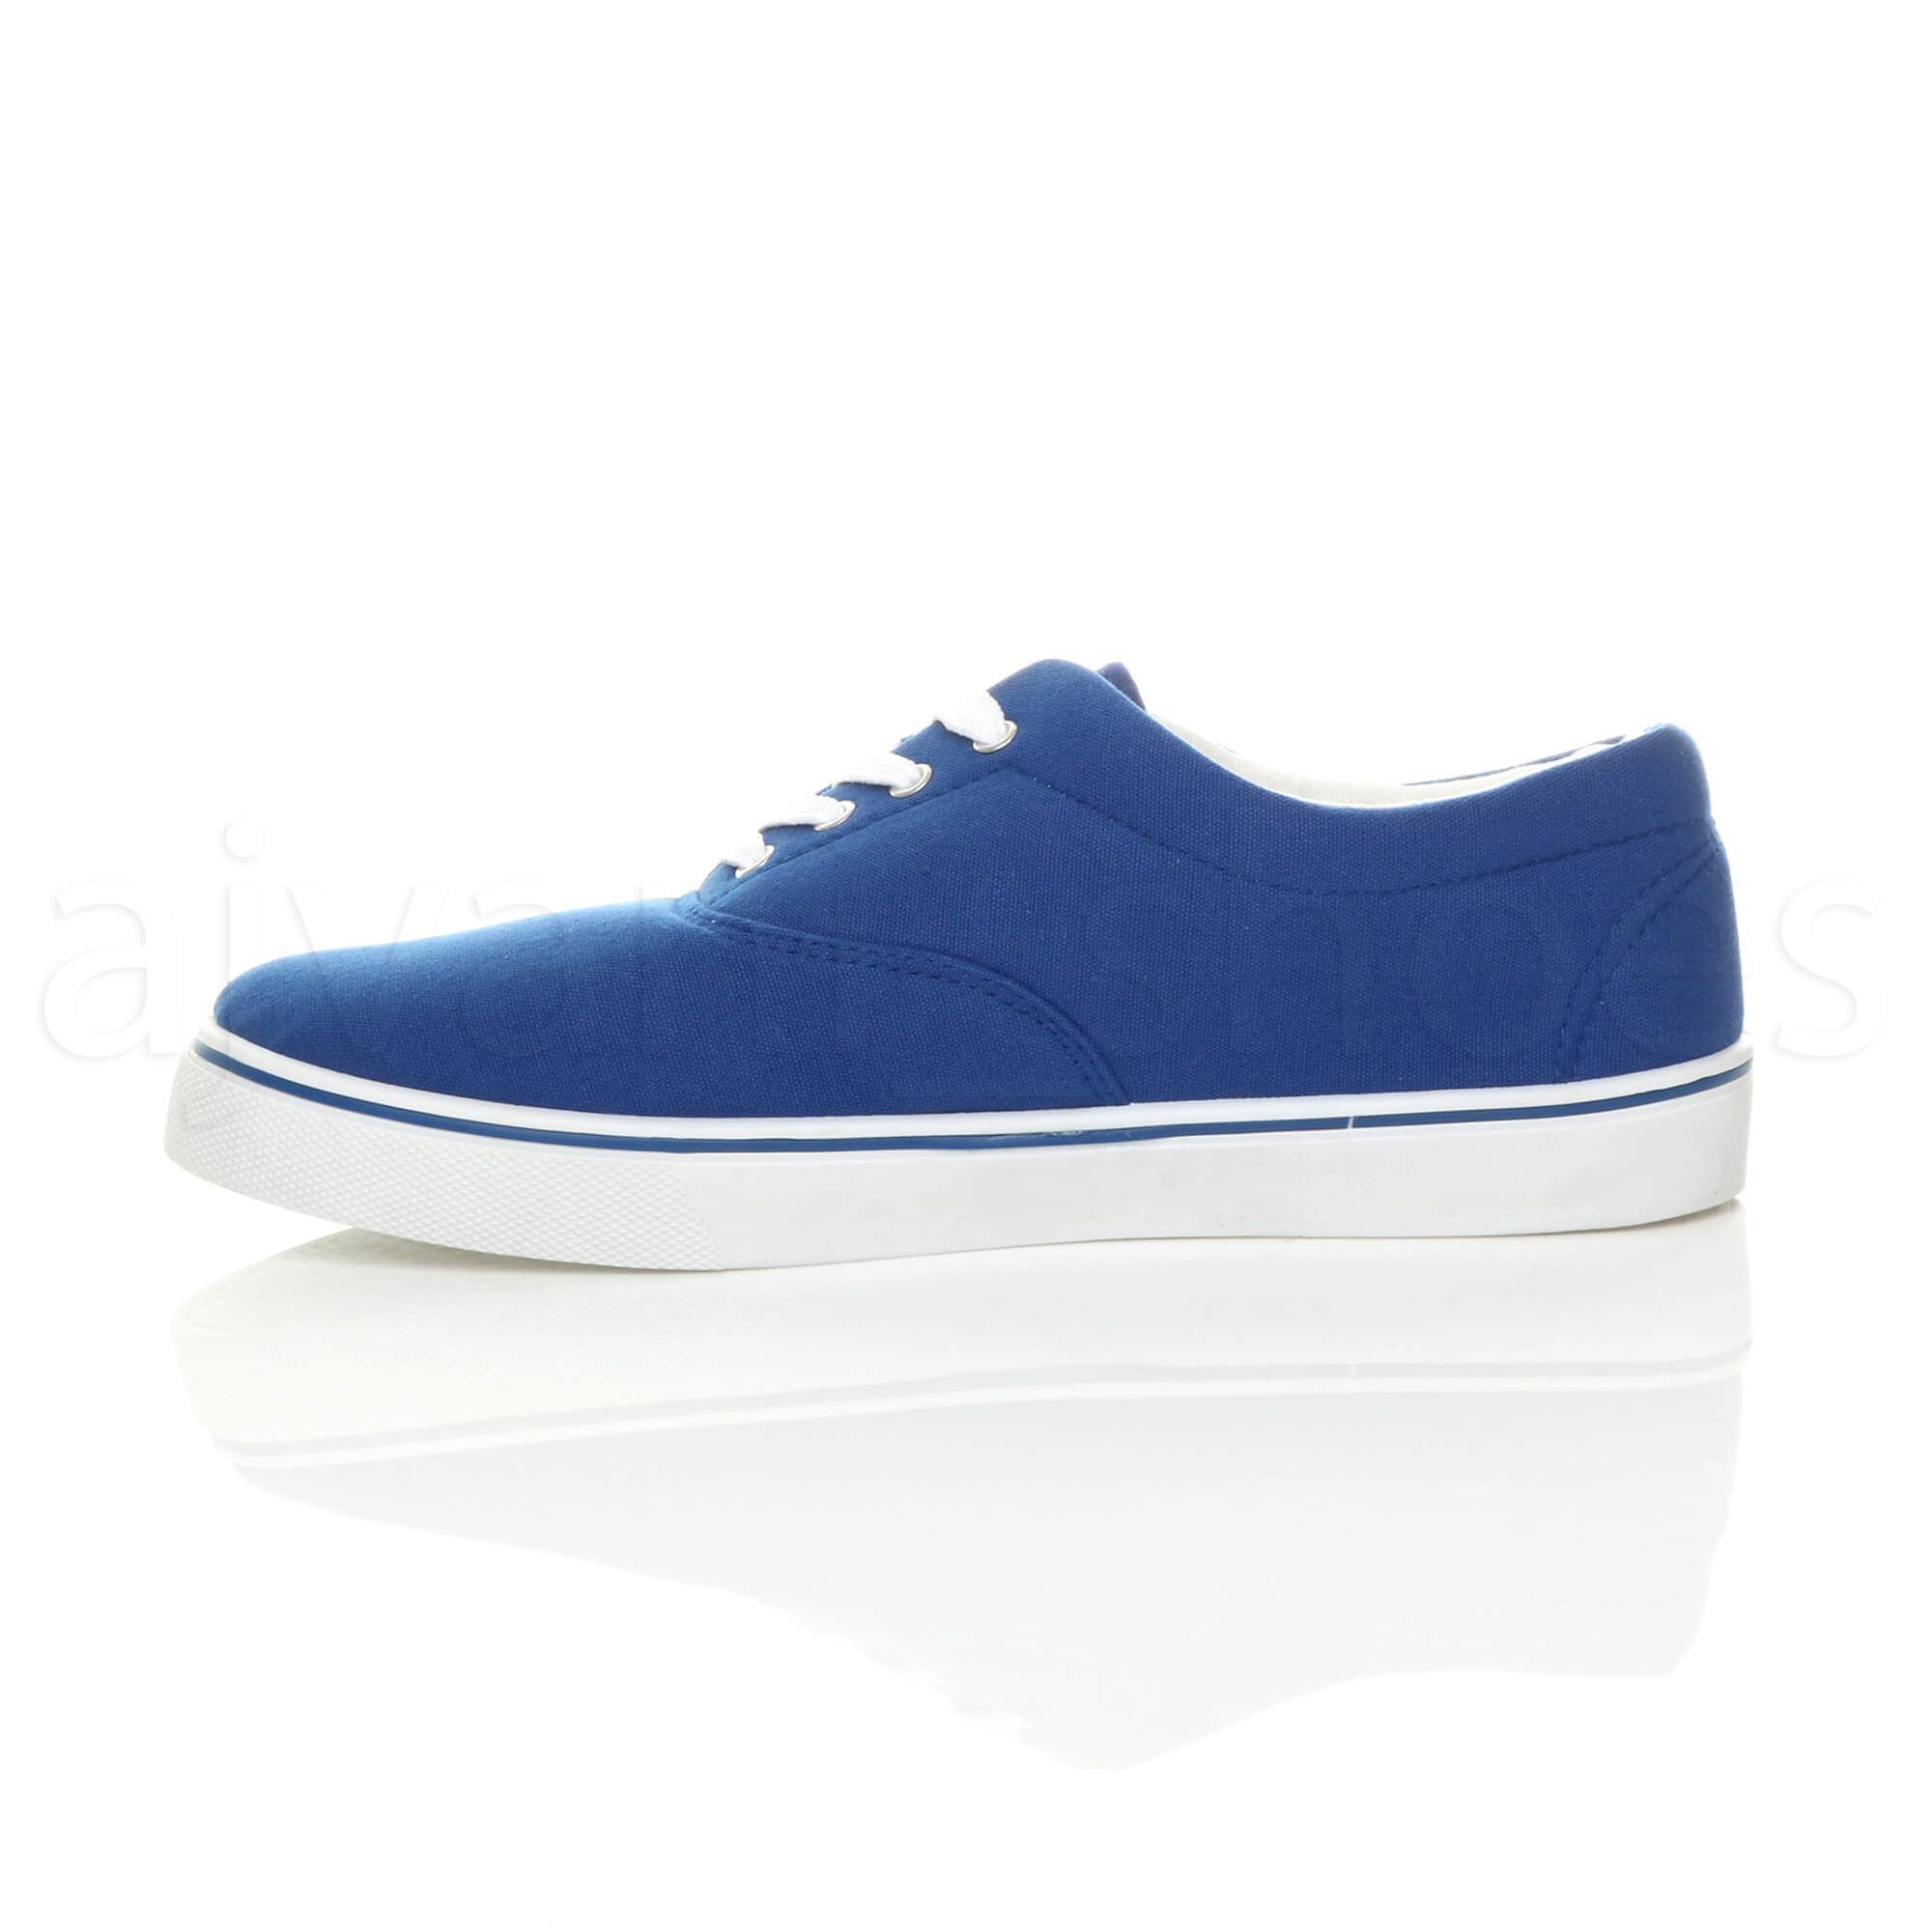 MENS-CANVAS-CASUAL-TRAINERS-PLIMSOLES-PLIMSOLLS-SHOES-LACE-UP-PUMPS-SIZE thumbnail 24